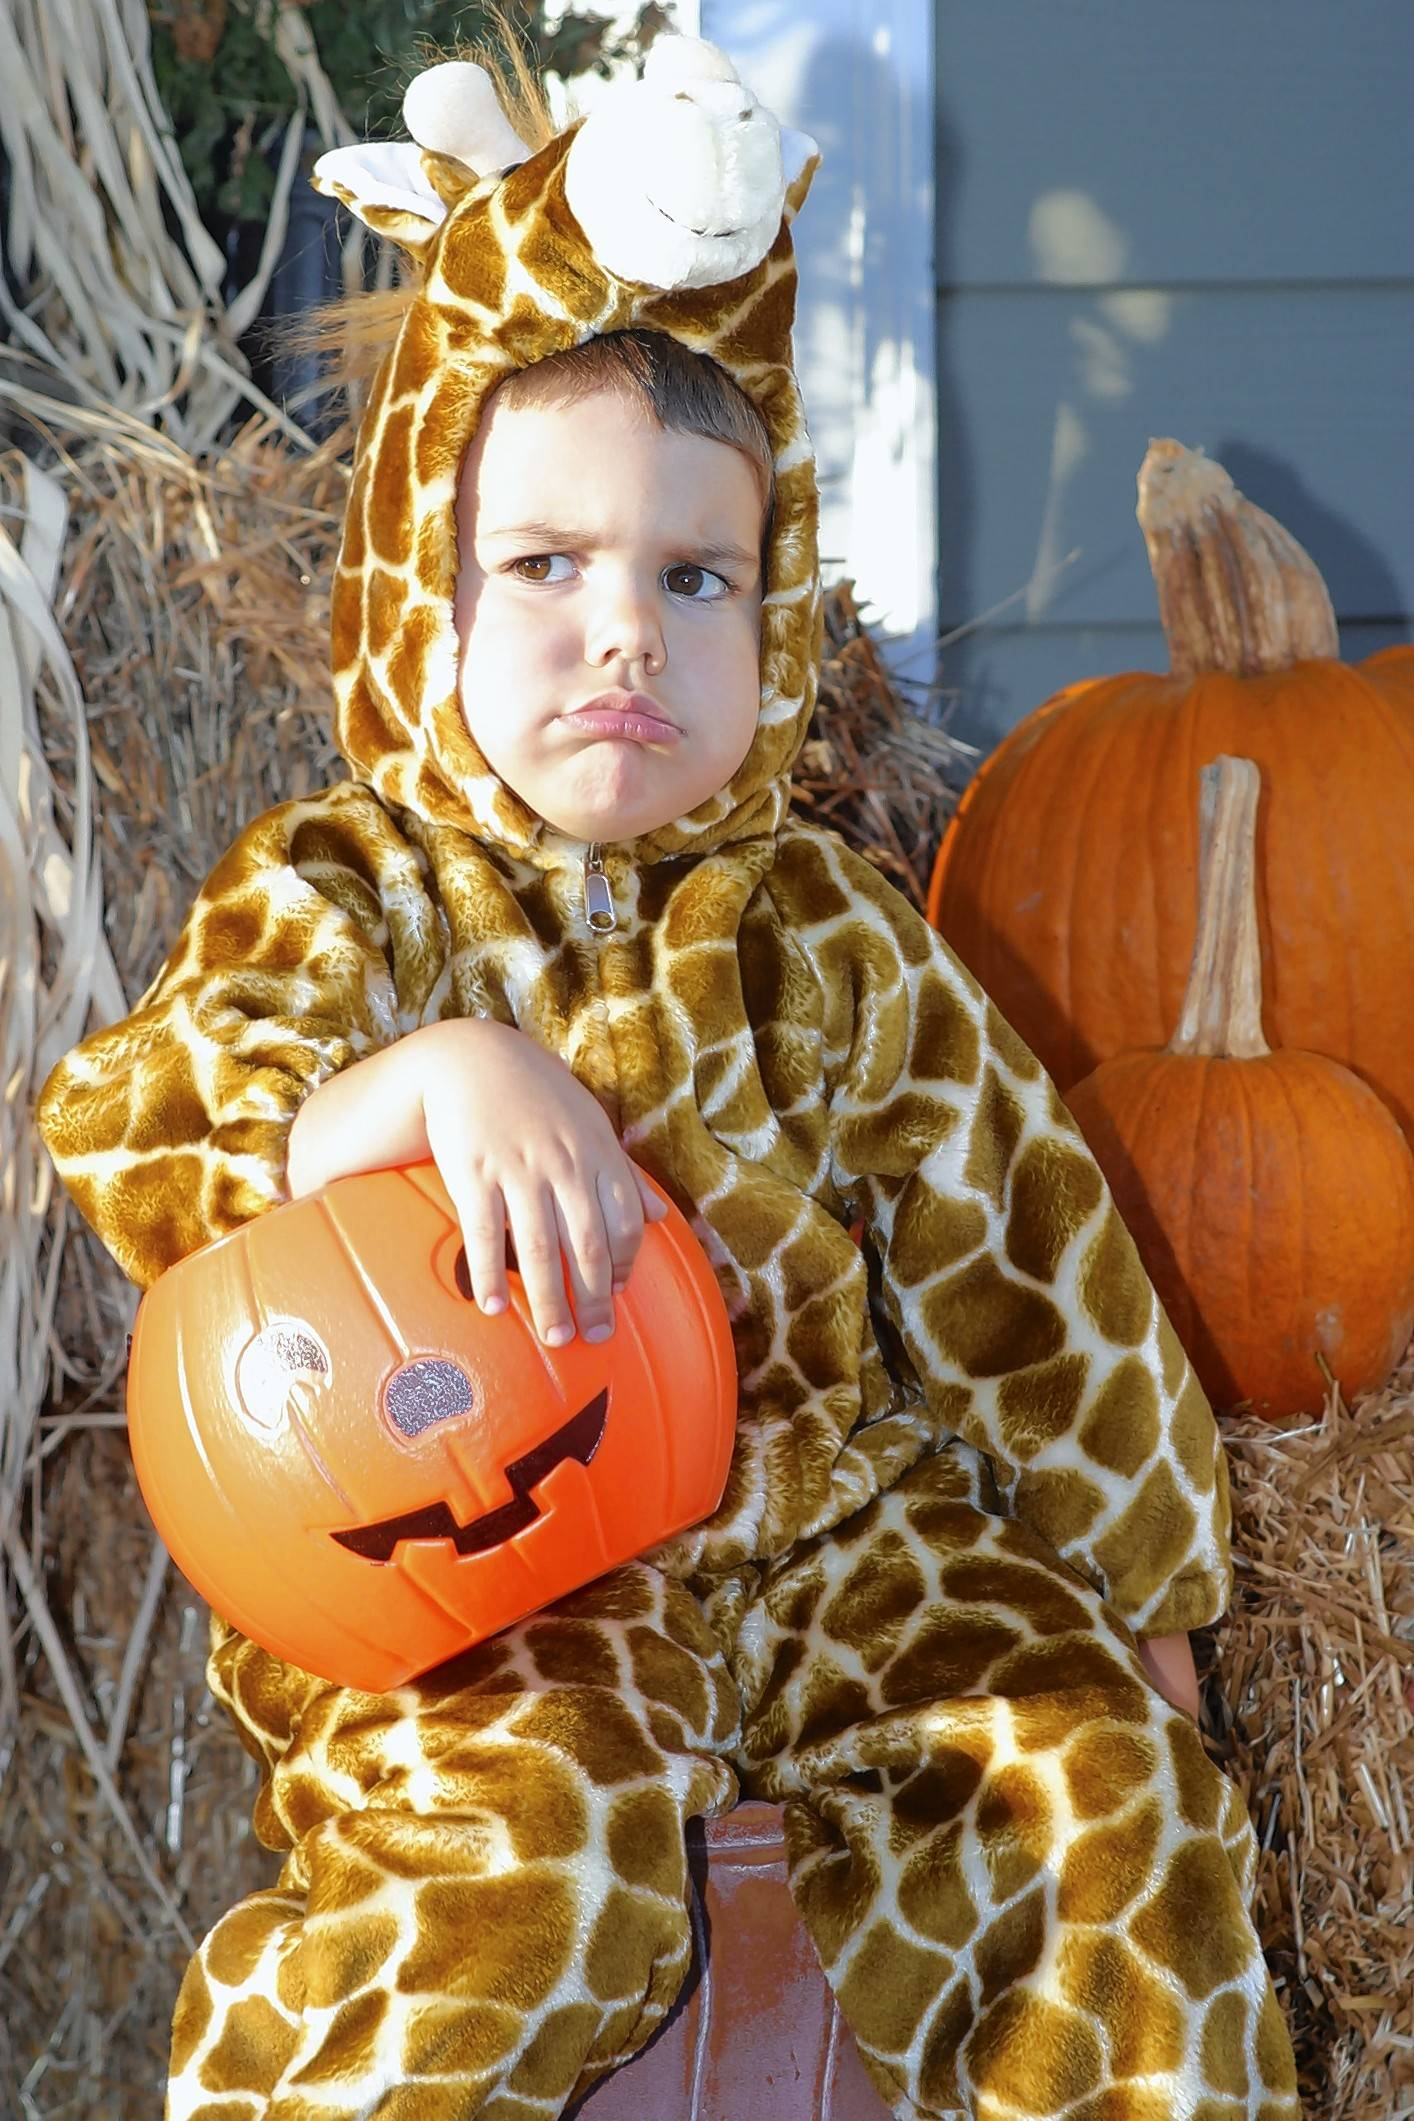 Costumes are often especially hard for kids with autism and sensory issues.